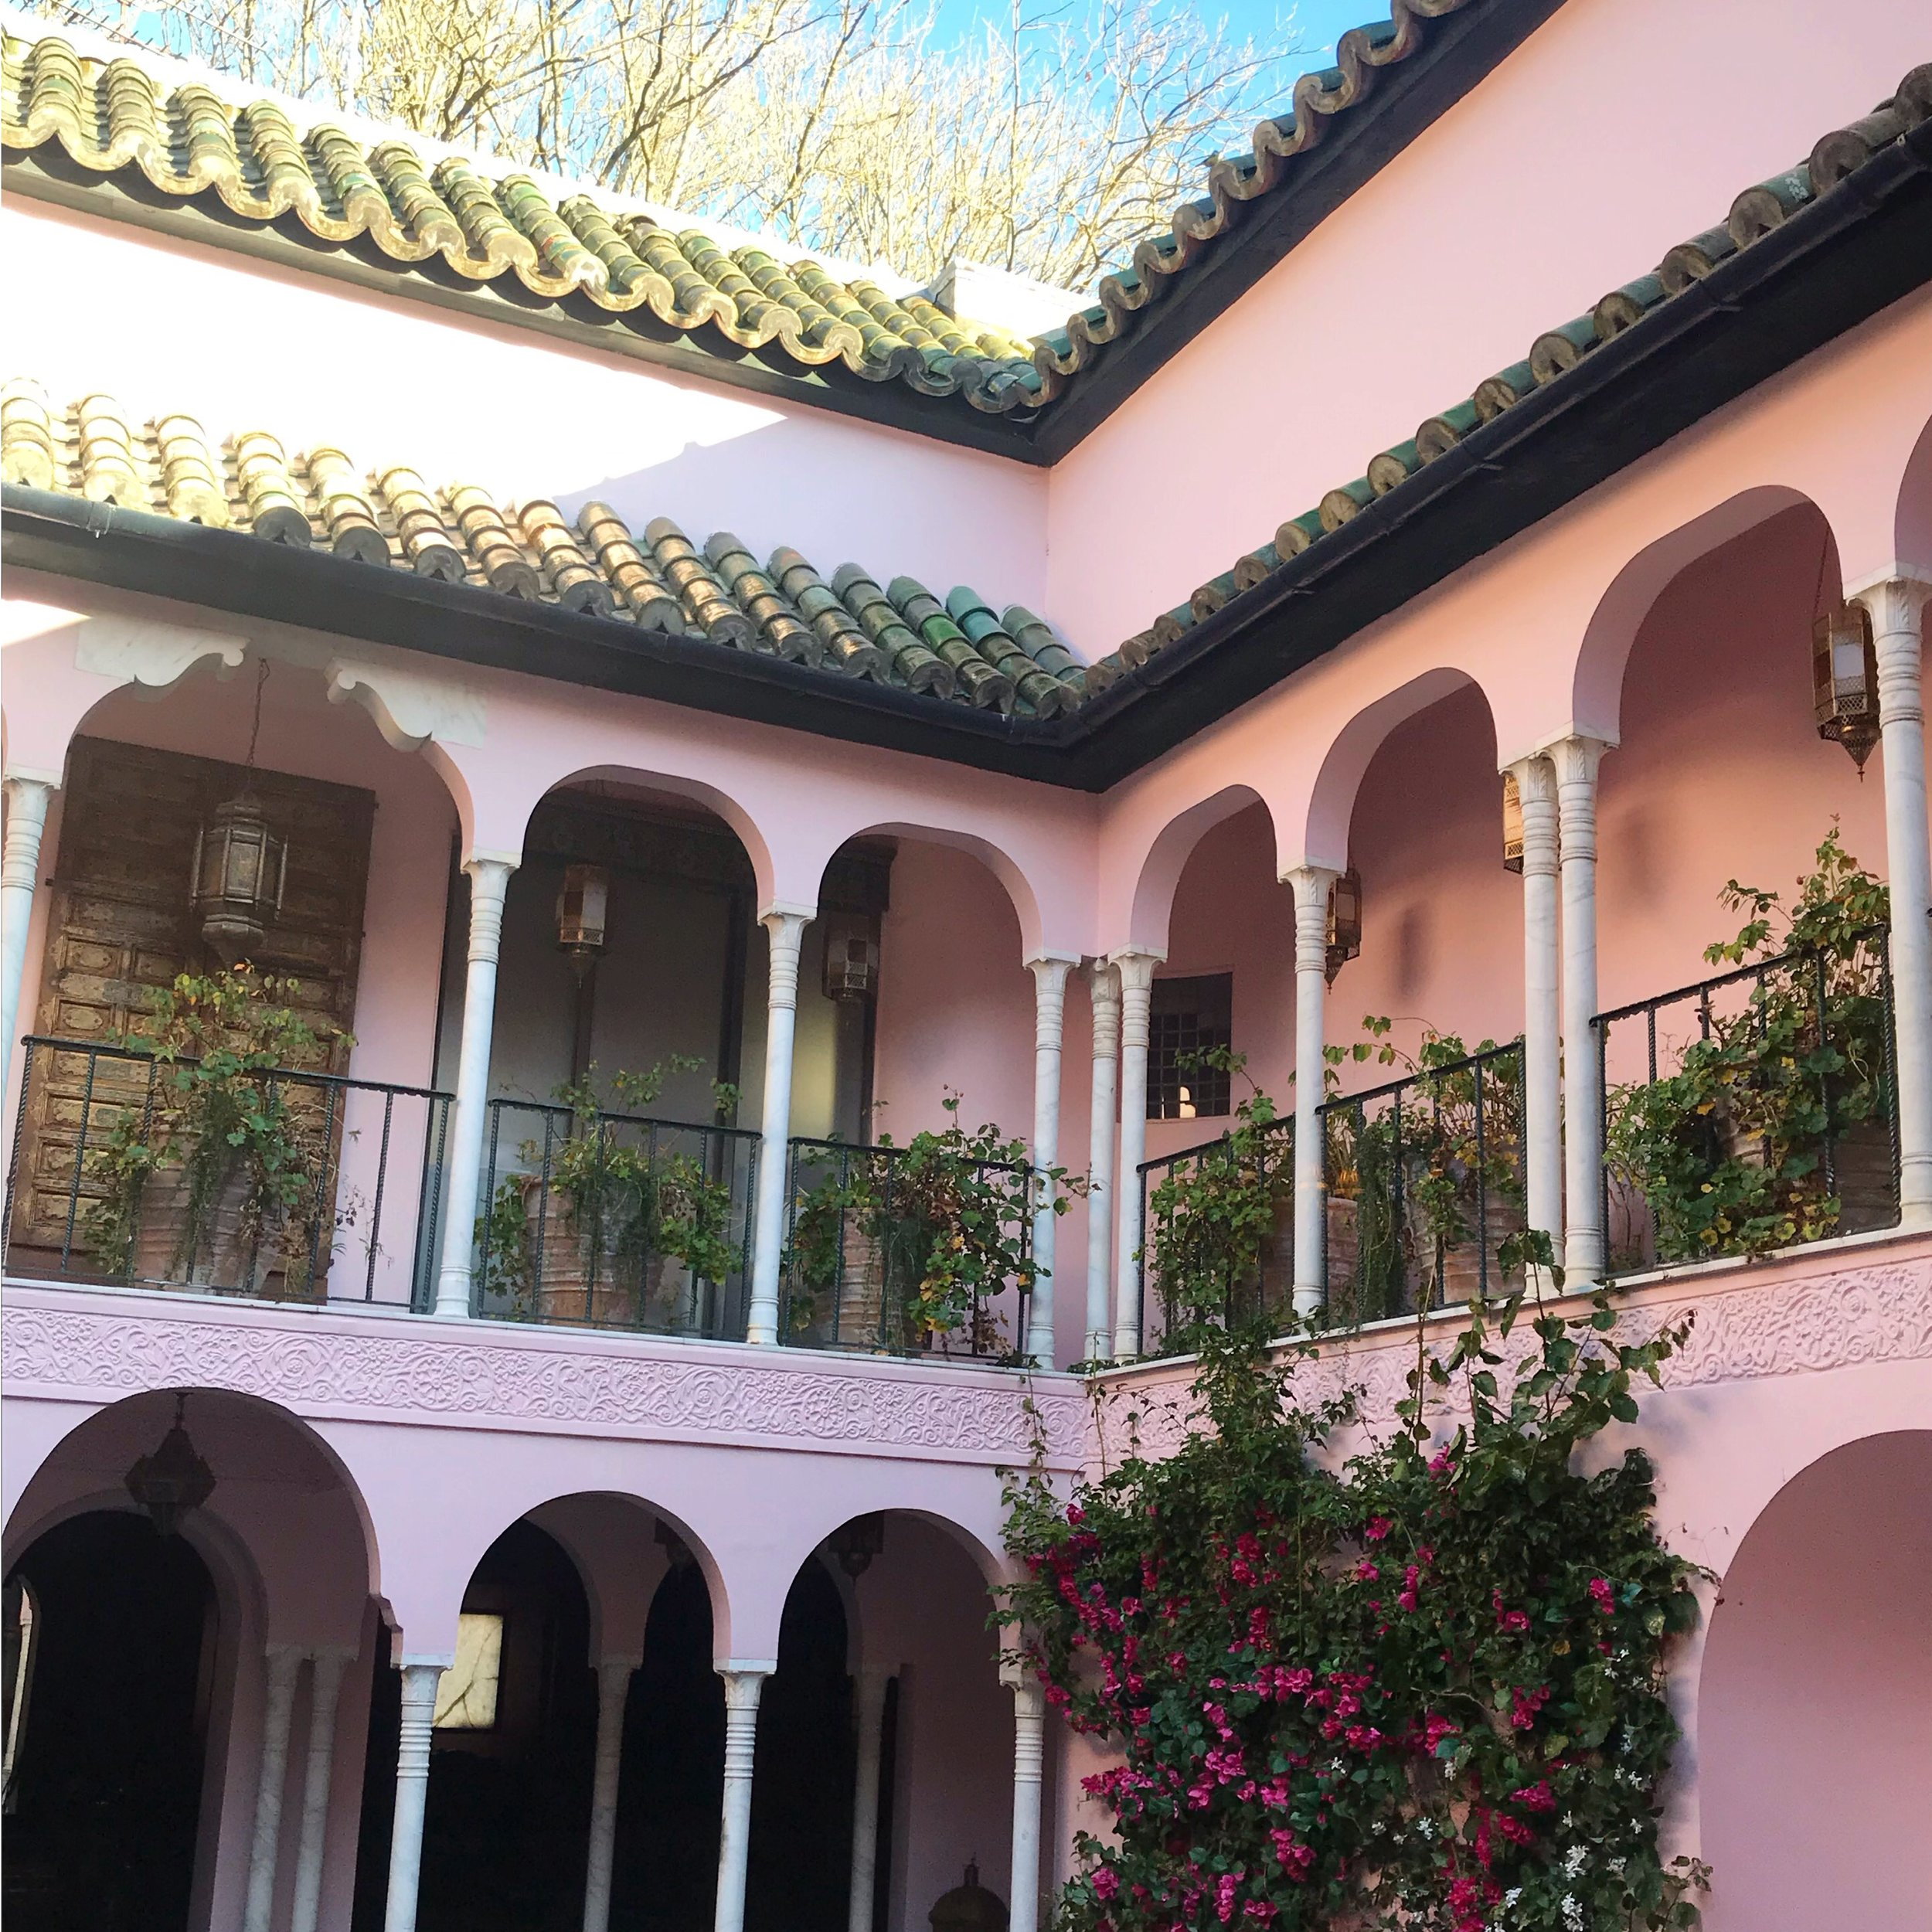 The Pink House approves of this colour scheme